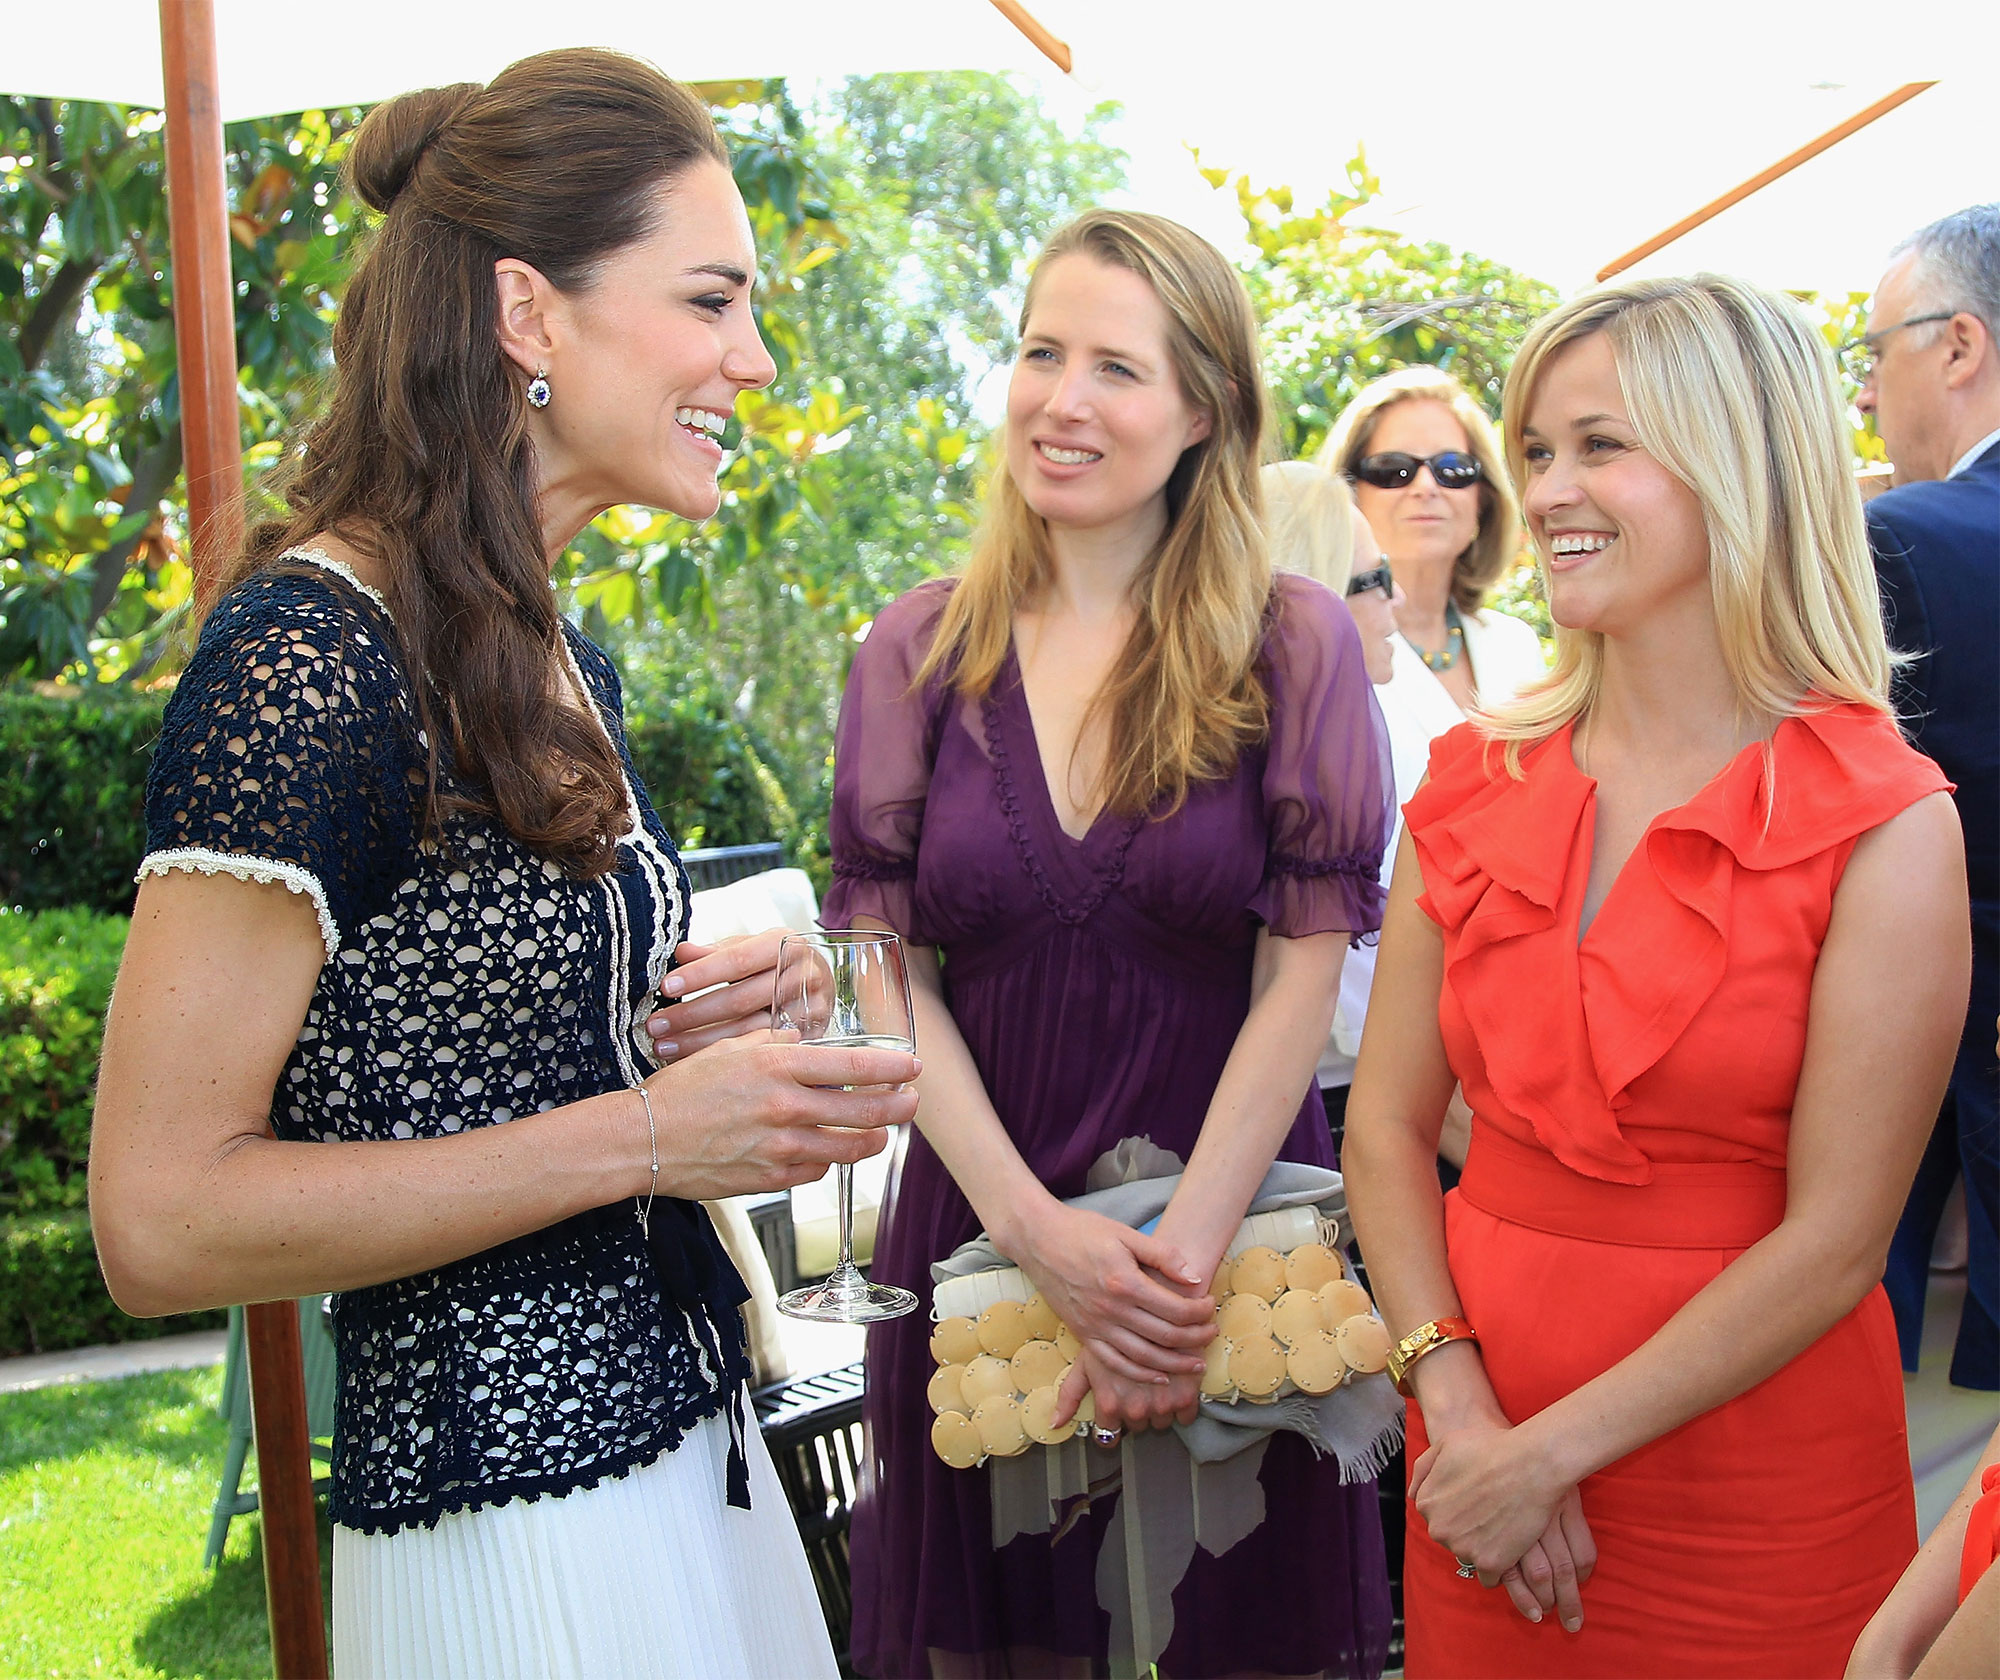 Reese Witherspoon Says Kate Middleton Gave Her Royal Fever Despite Previously Being 'Immune'